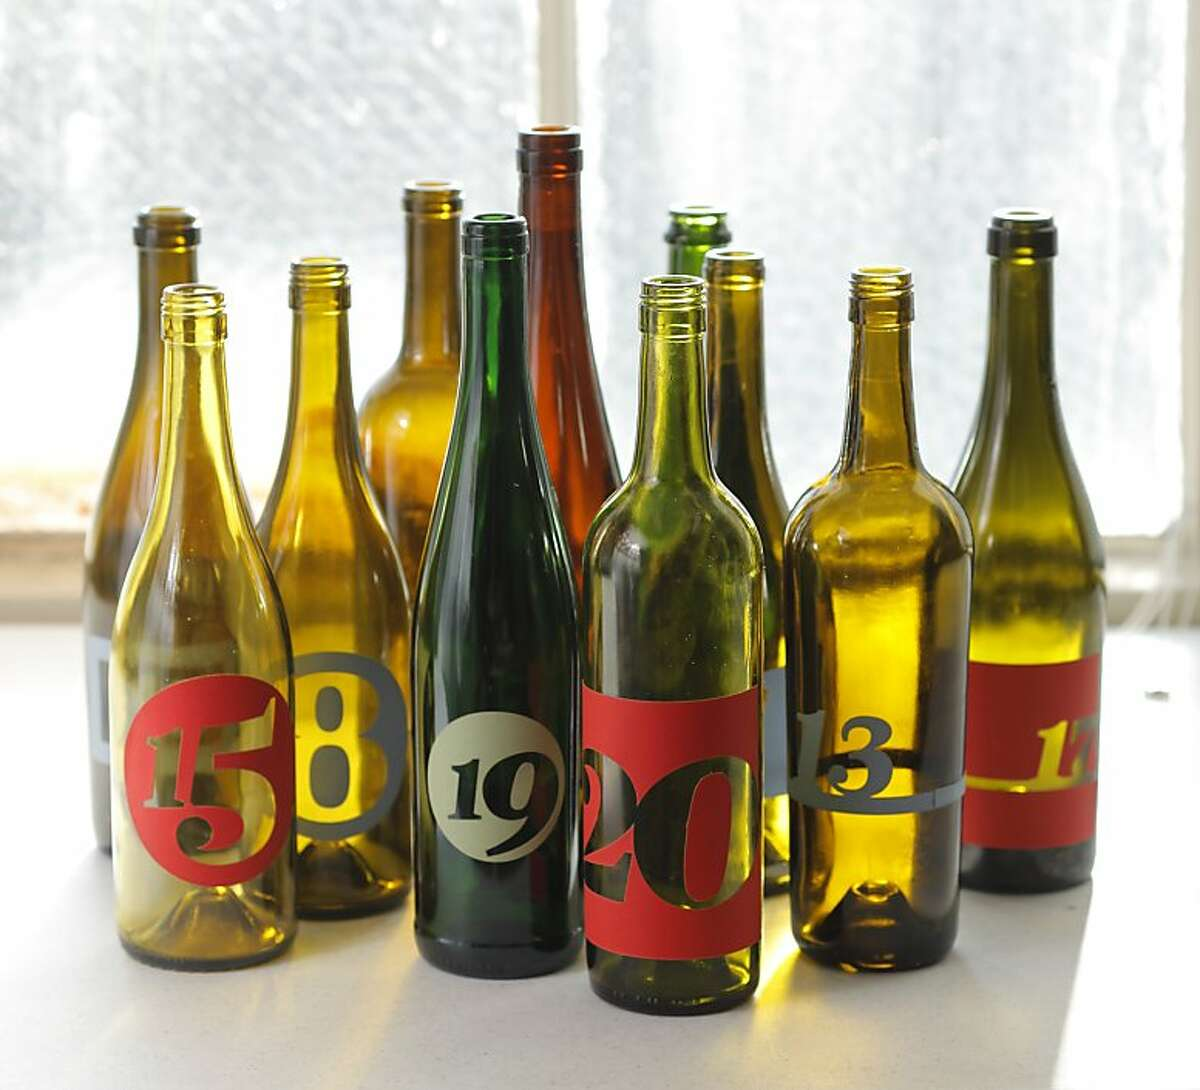 20 great wines, each for $20 or less that also offer a legitimate look at a grape and place.